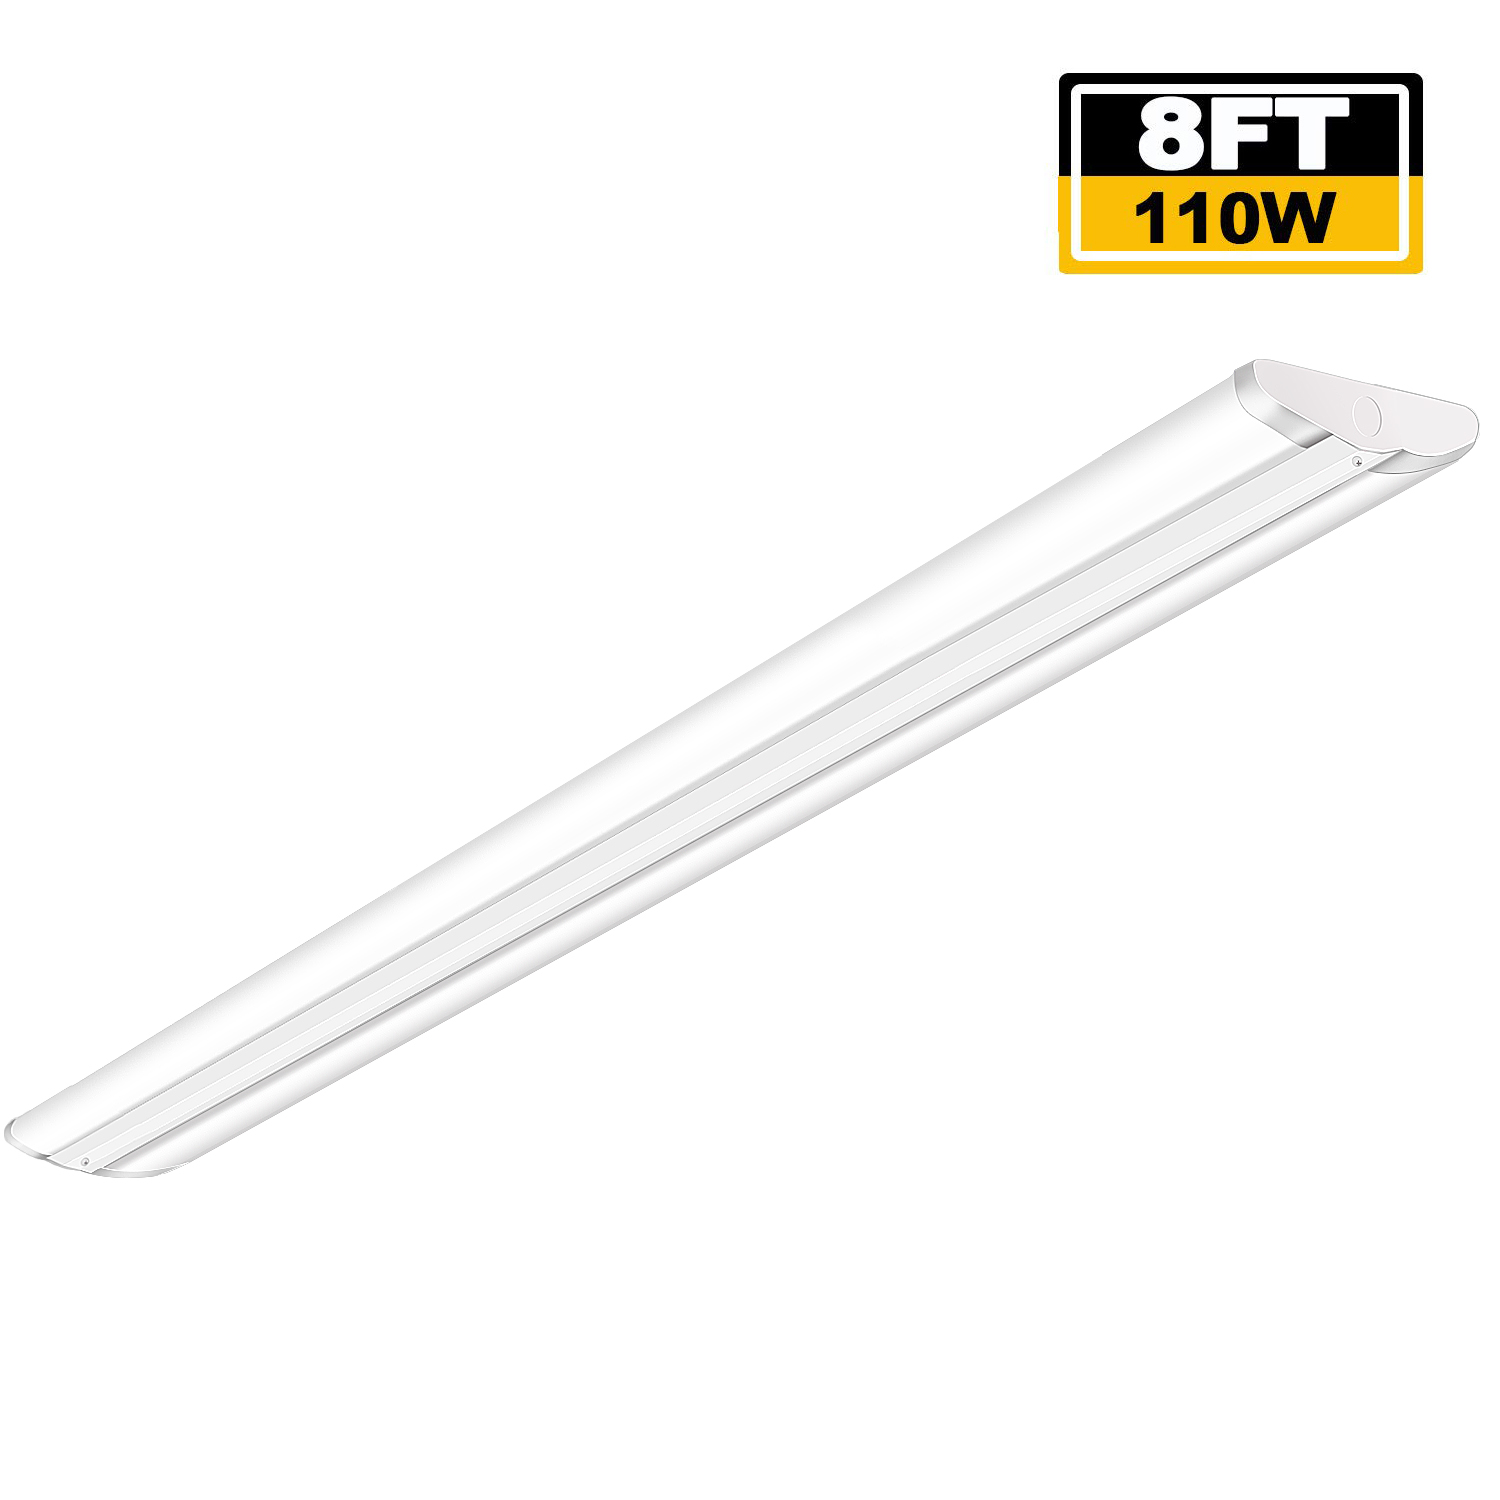 8 Ft 2 Lamp Fluorescent Strip Light White No Ssf2964wp 8ft: 8FT LED Shop Light Fixture 110W LED Ultra Slim Garage